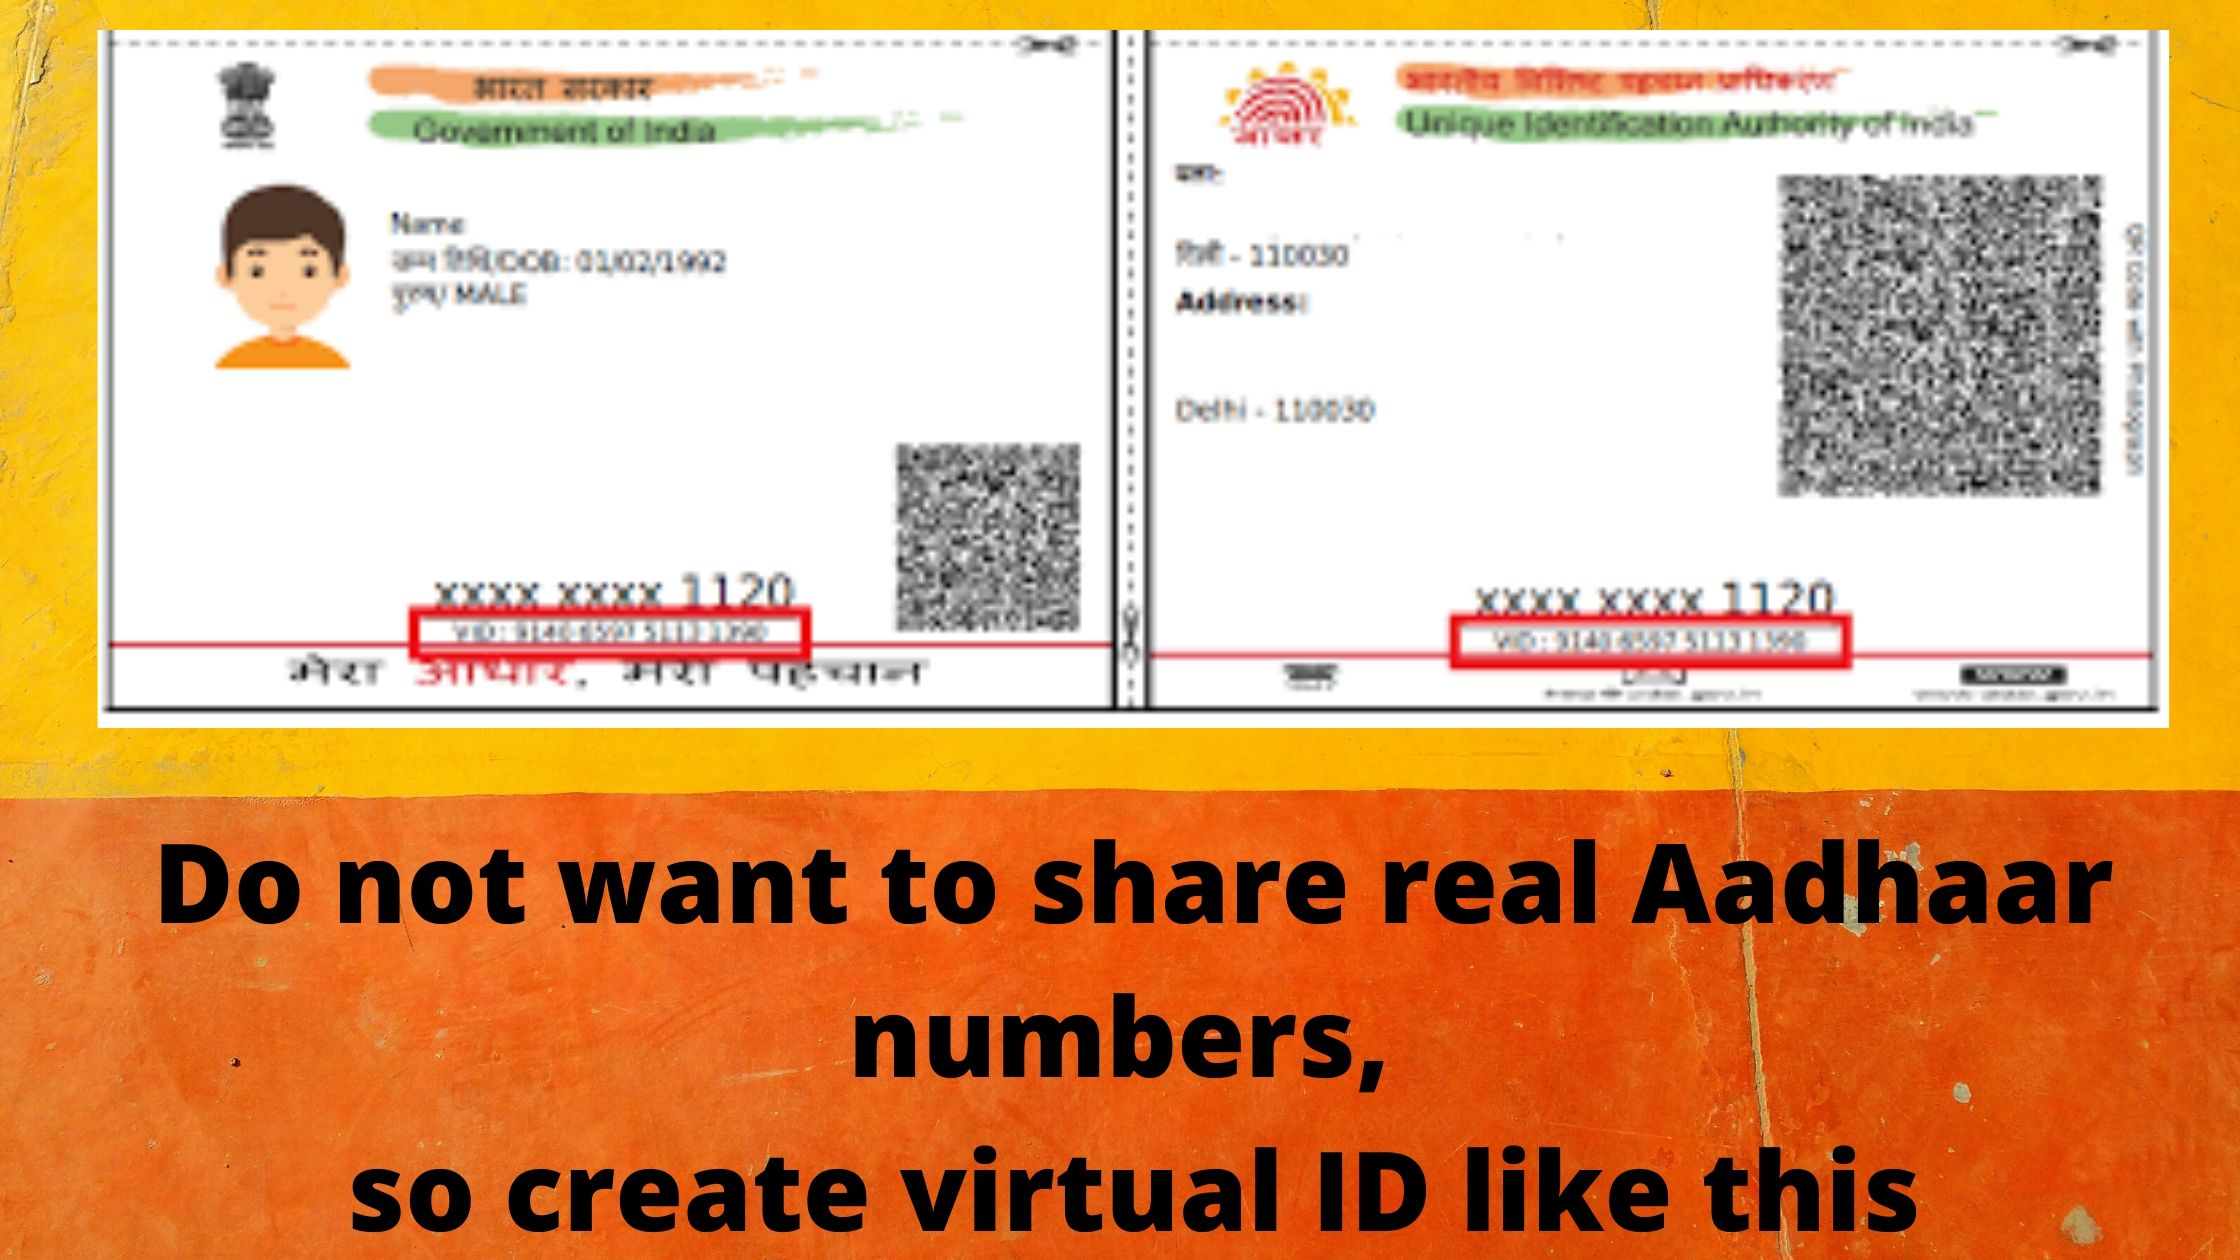 do-not-want-to-share-real-aadhaar-numbers,-so-create-virtual-id-like-this-http://masterjitips.com/